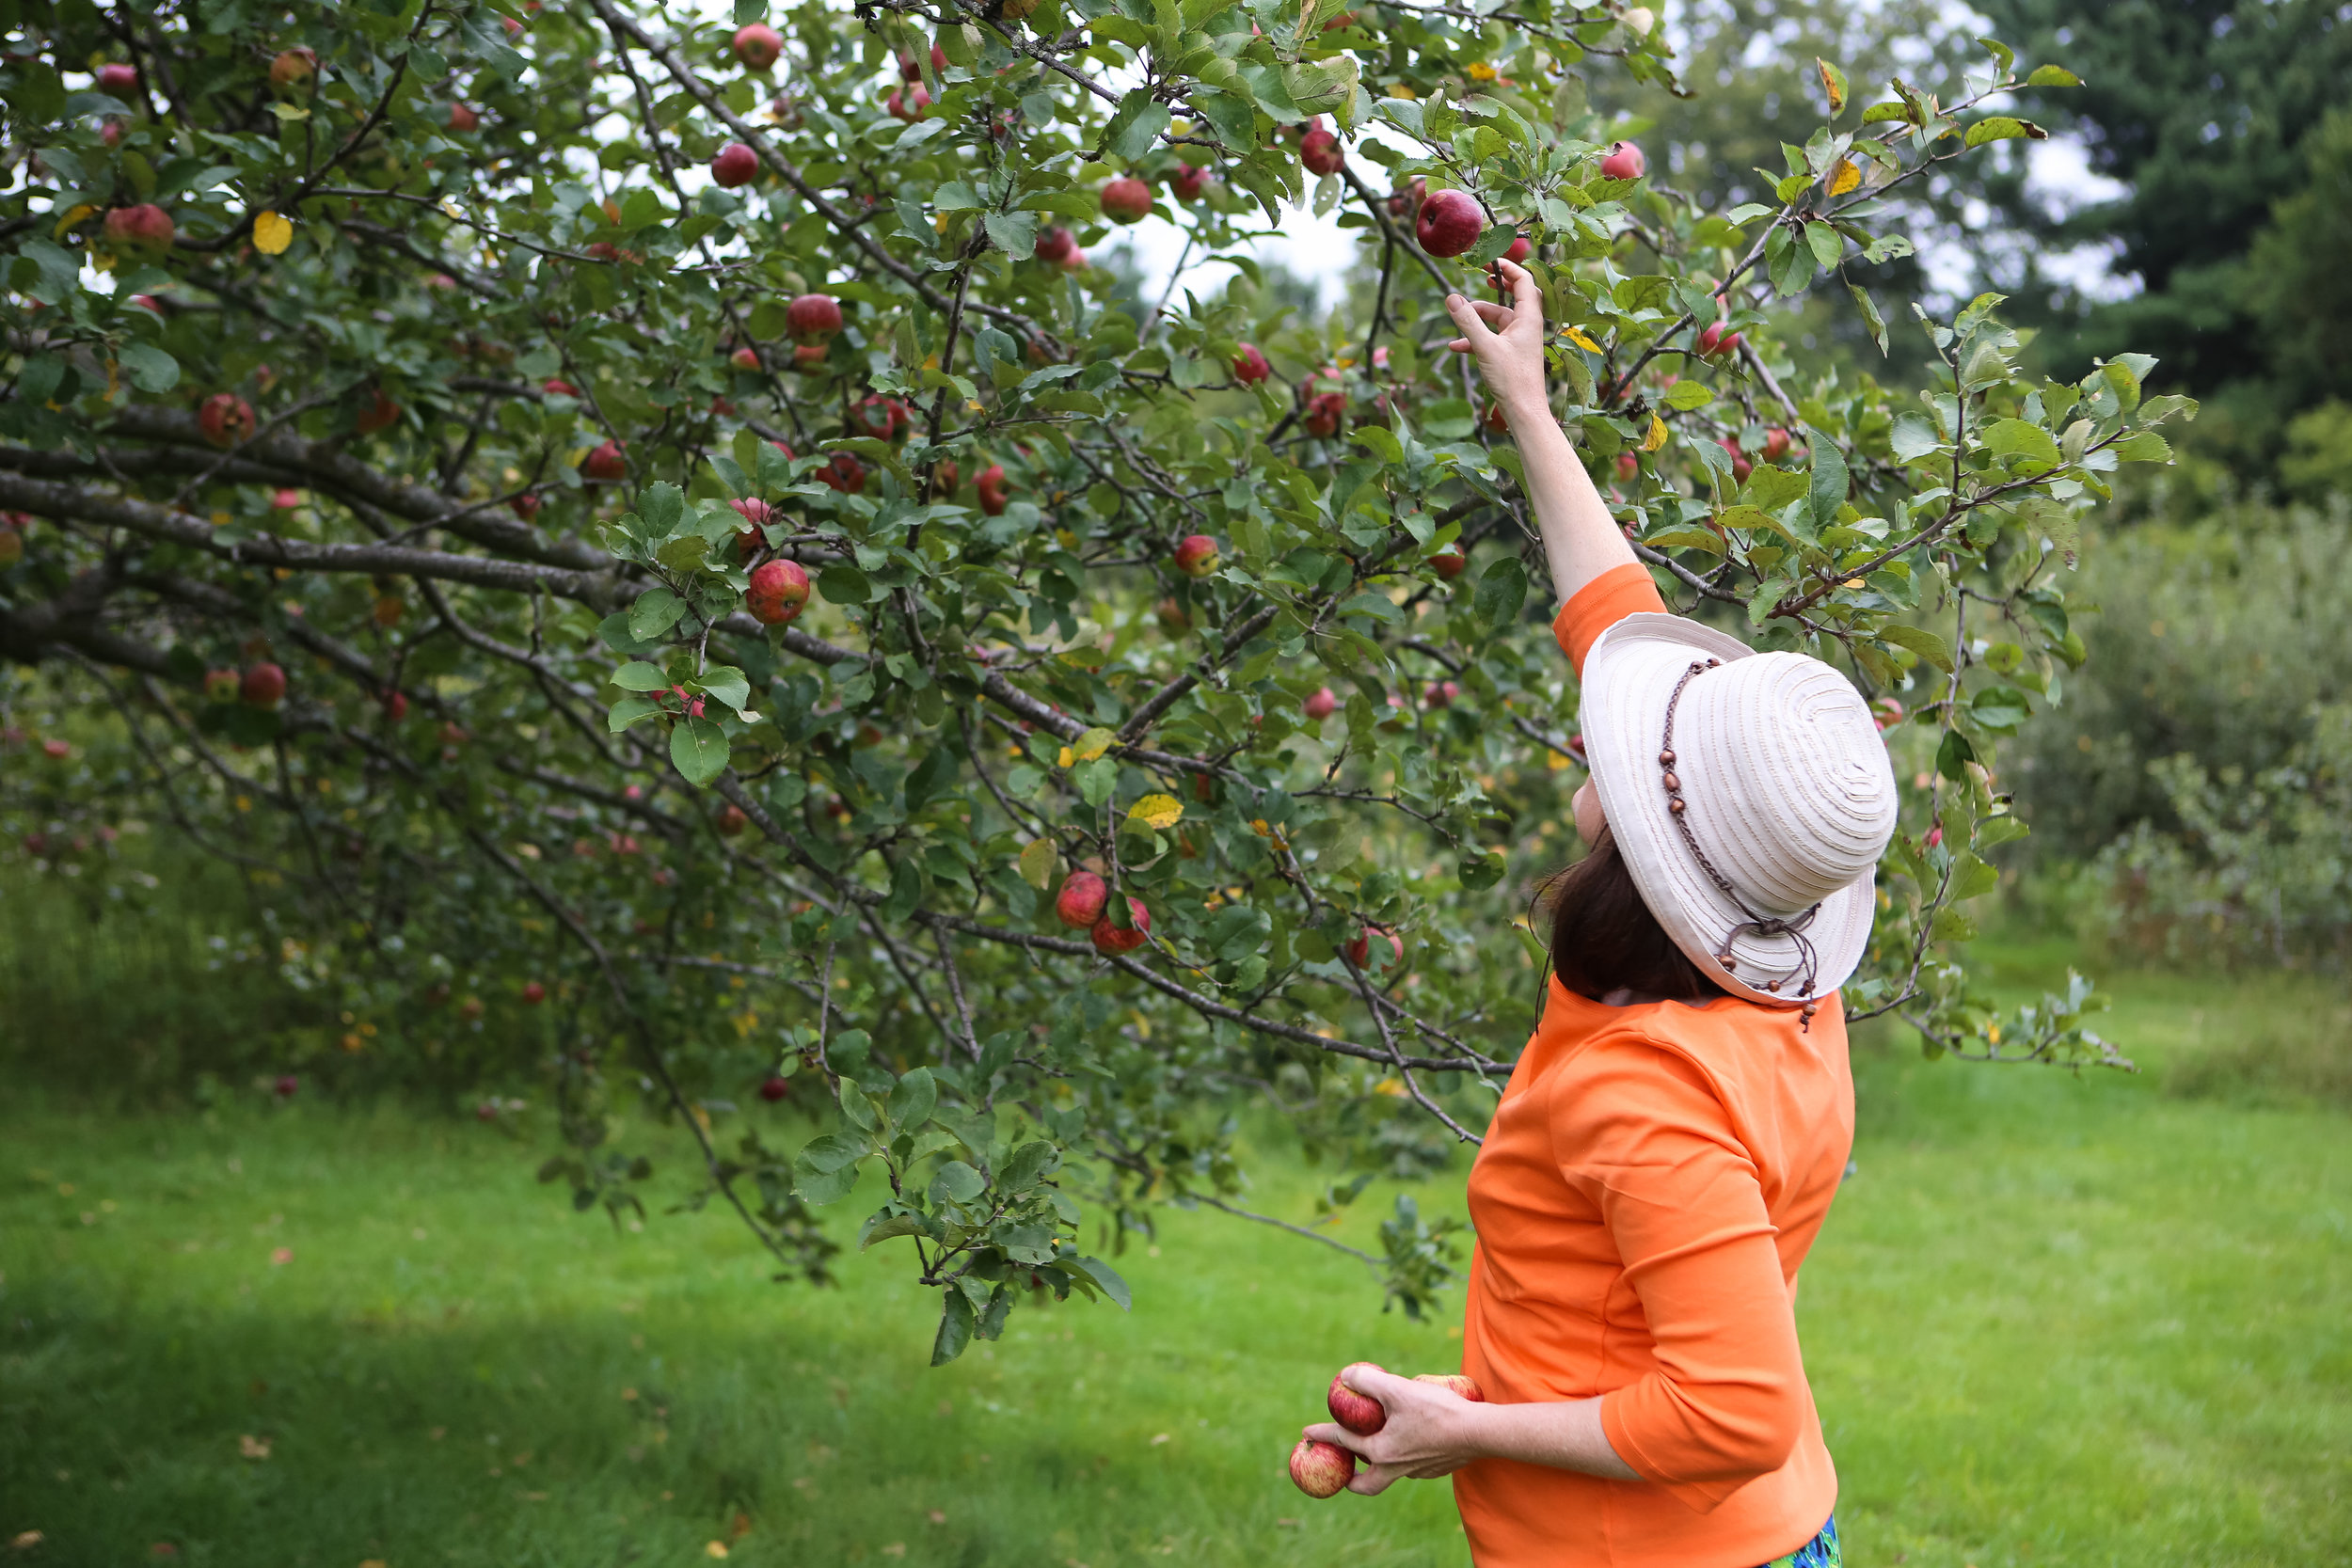 Ripe for the picking: Springtime blooms yield thousands of ripe heirloom apples in Seed Savers Exchange's Historic Orchard each summer and fall.